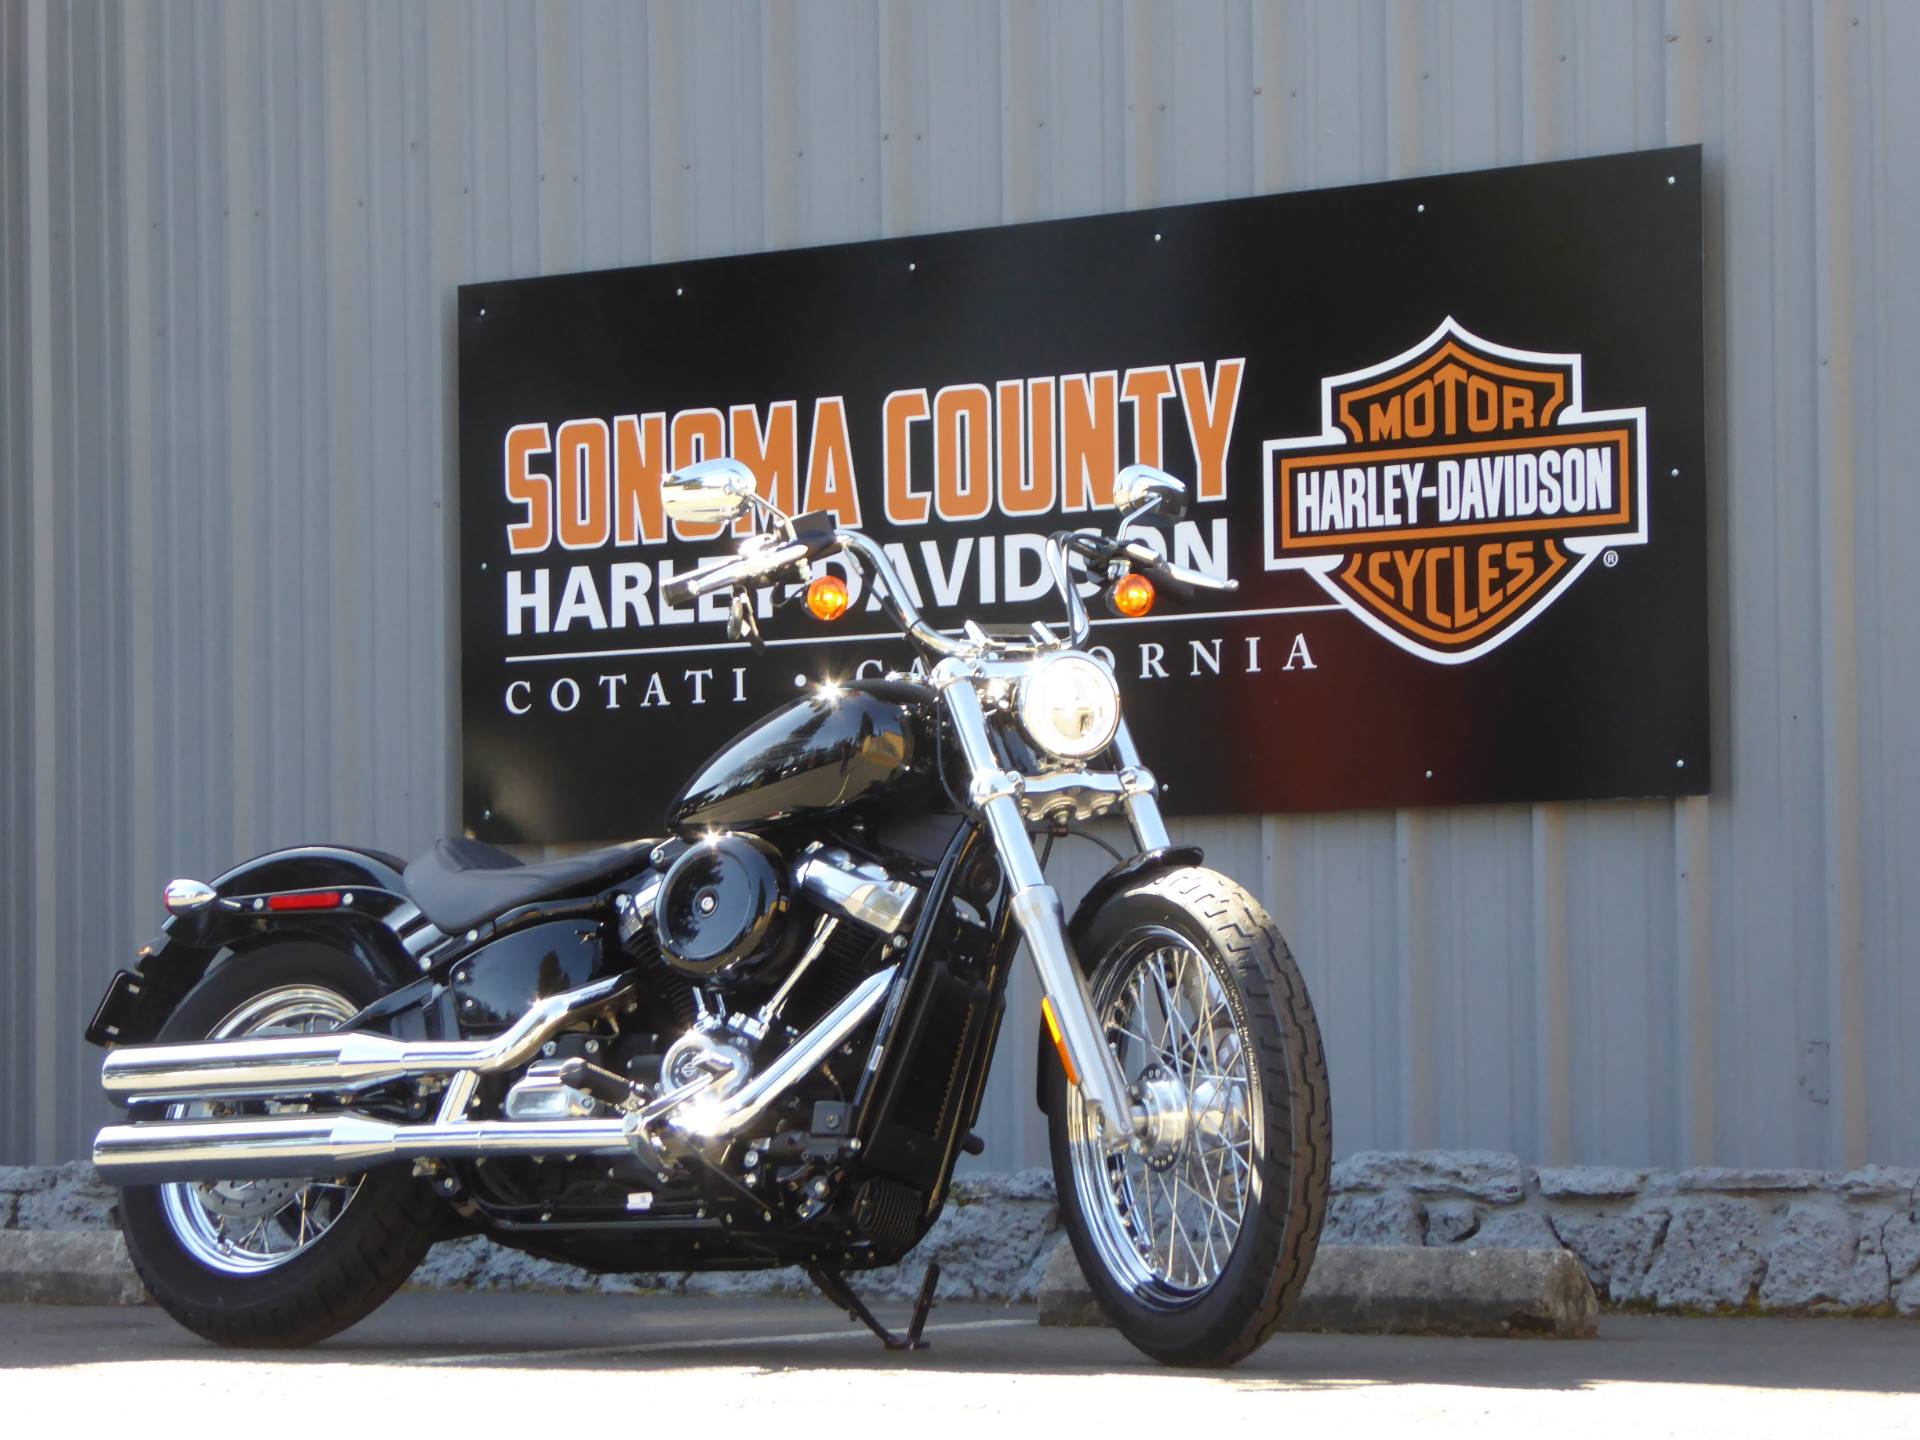 2021 Harley-Davidson SOFTAIL STANDARD in Cotati, California - Photo 2